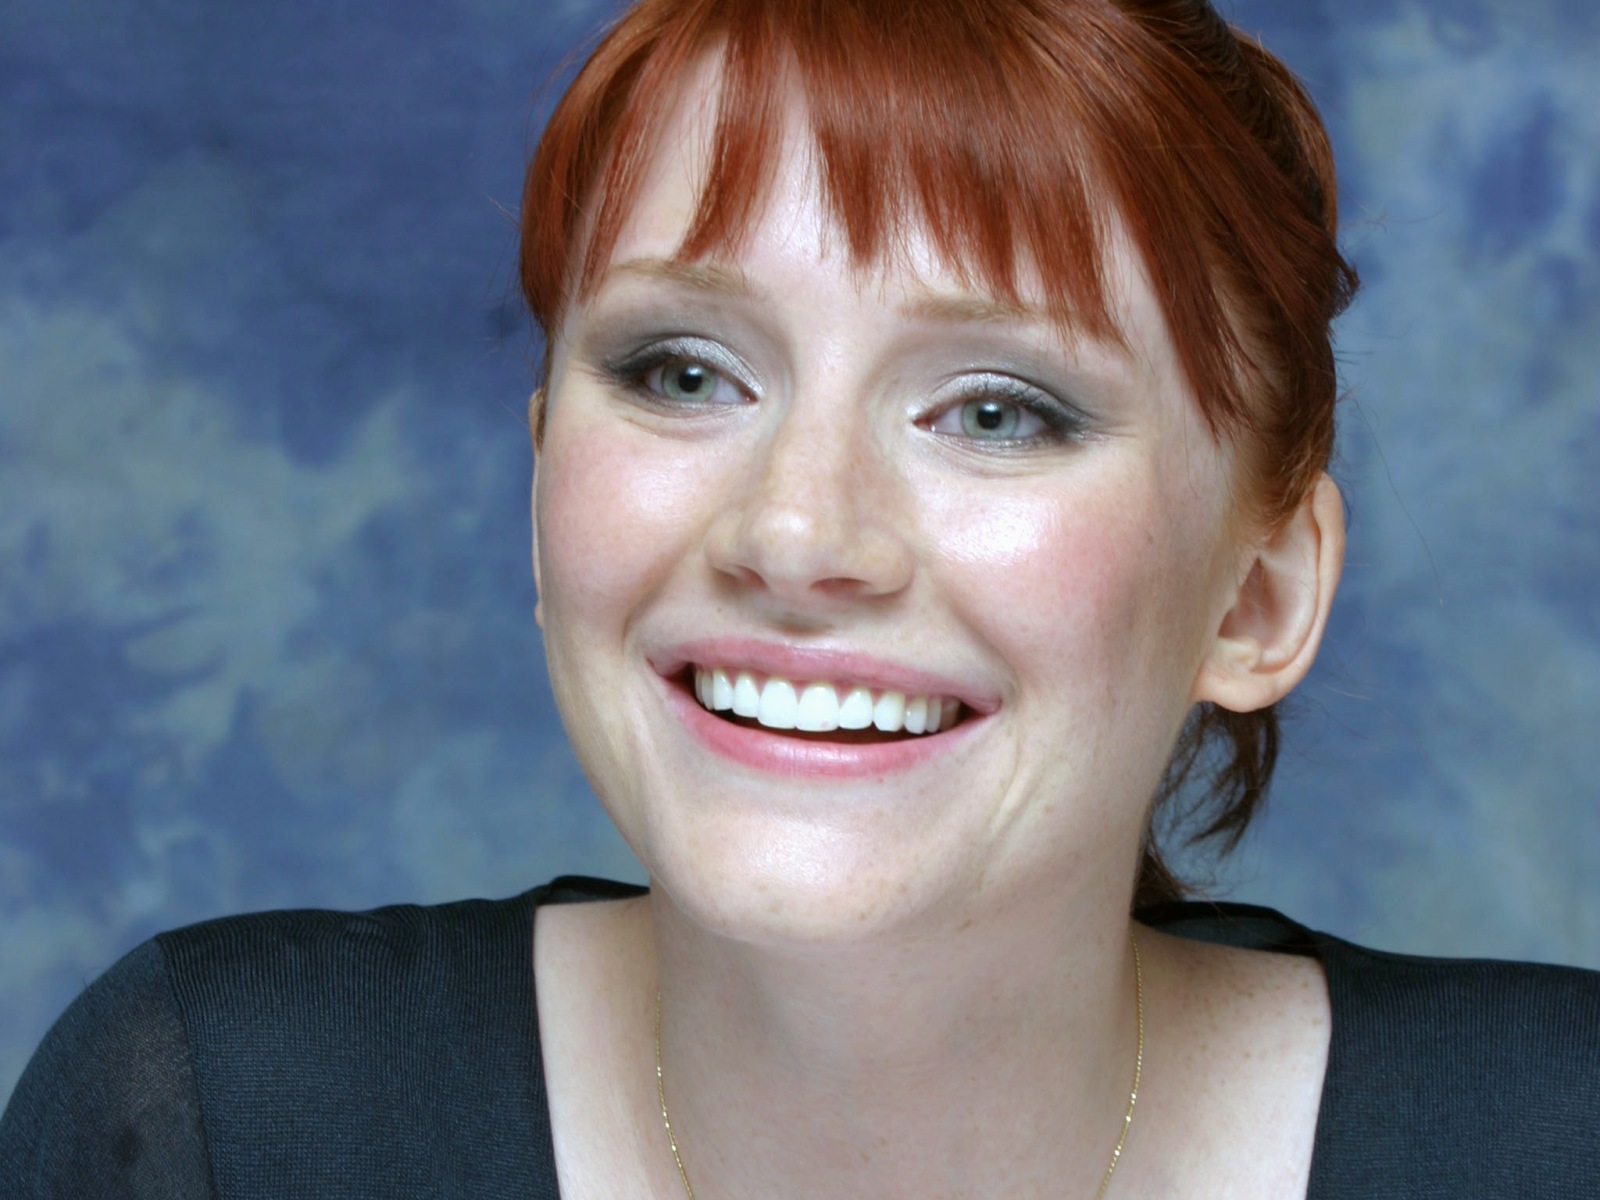 bryce dallas howard smile wallpaper pictures 53501